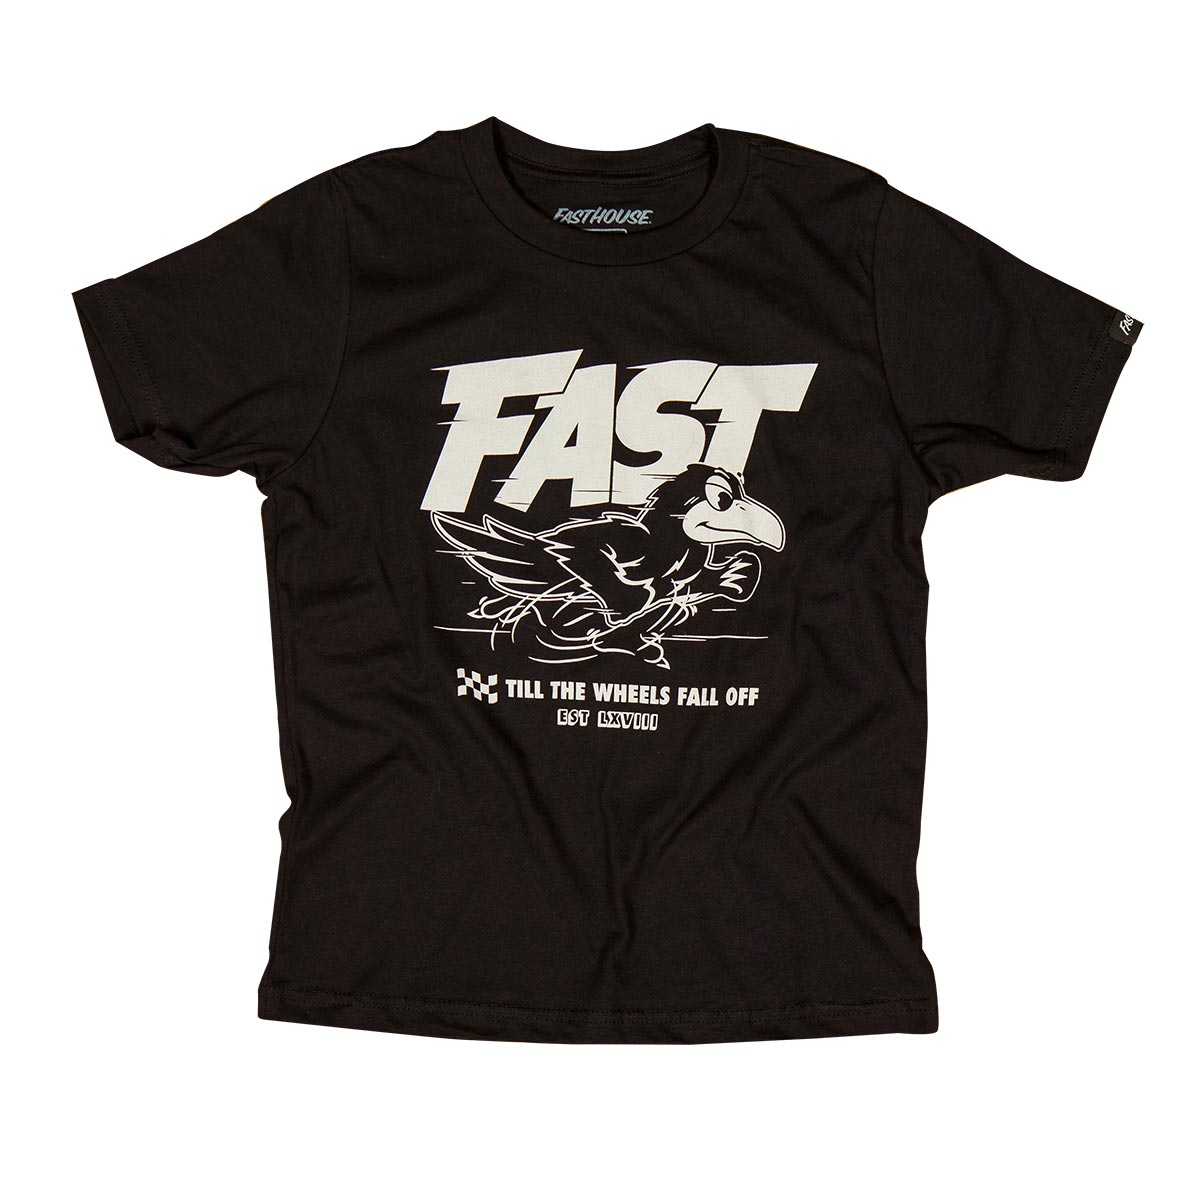 Fasthouse - George Youth Tee - Black